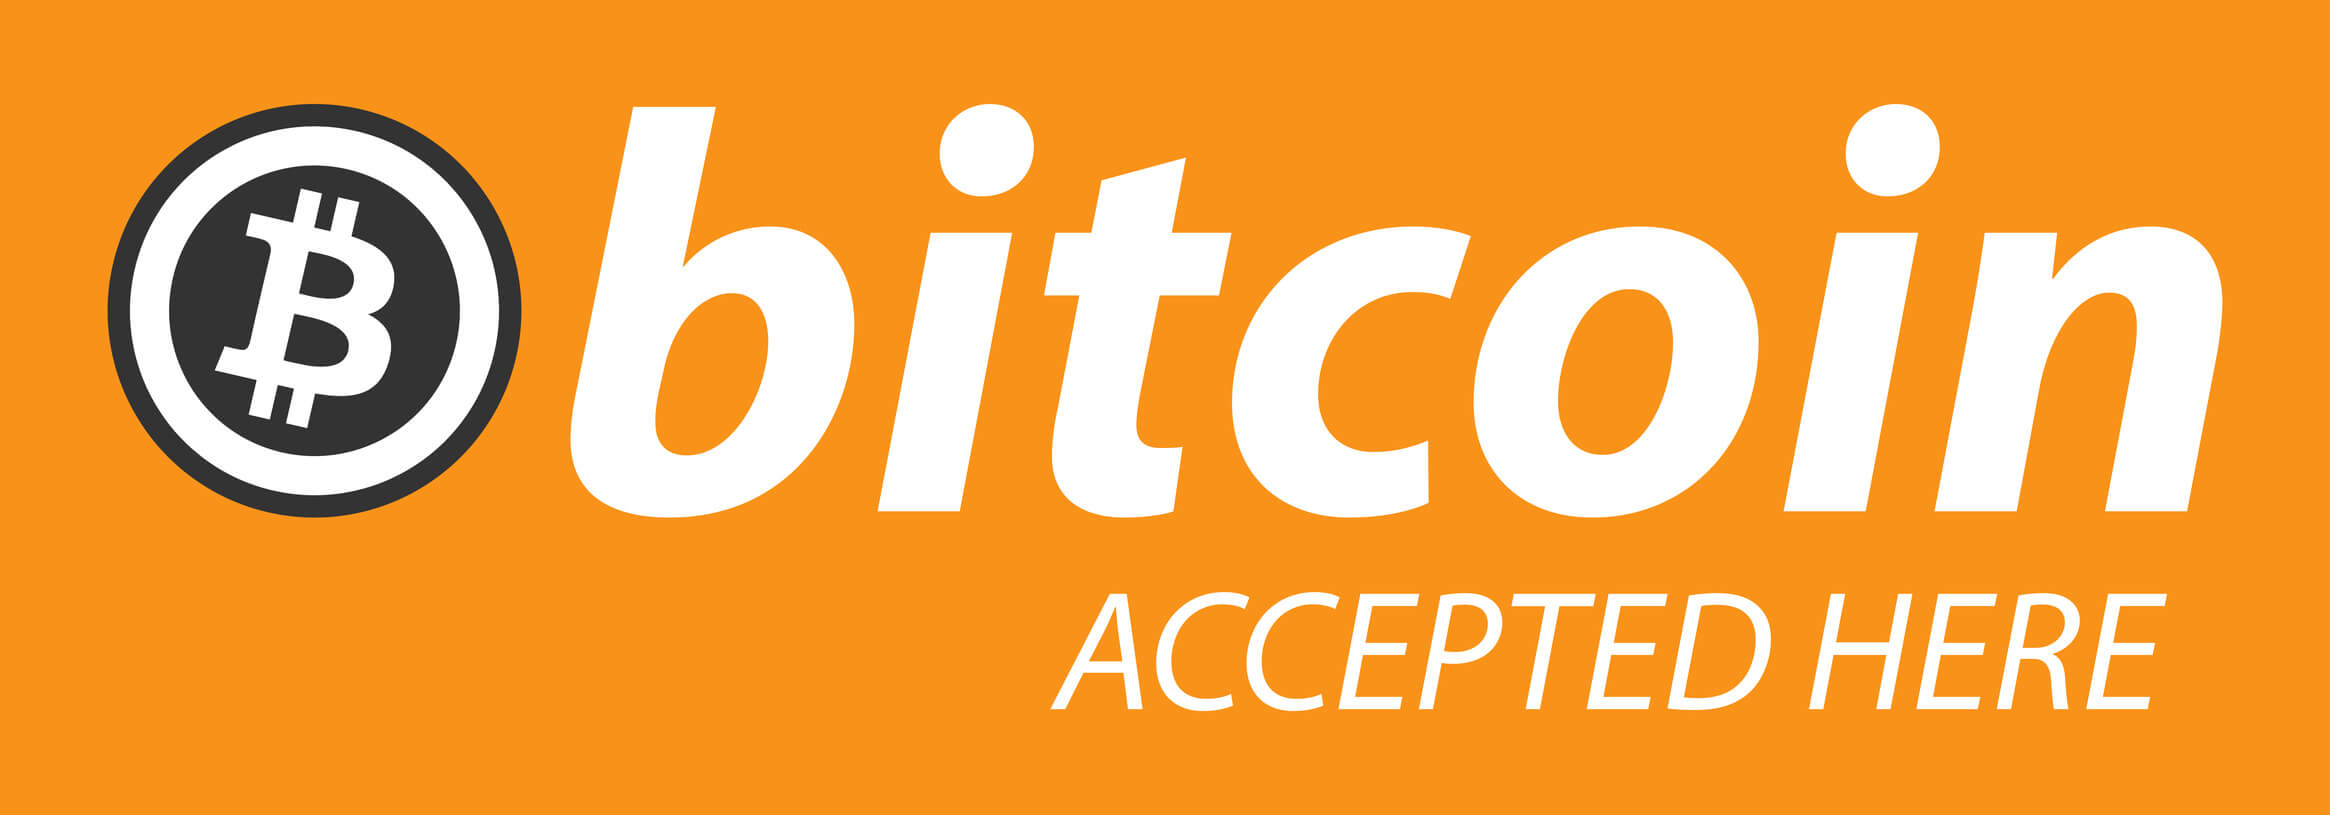 Bitcoins kaufen paysafecard free bitcoins wallet